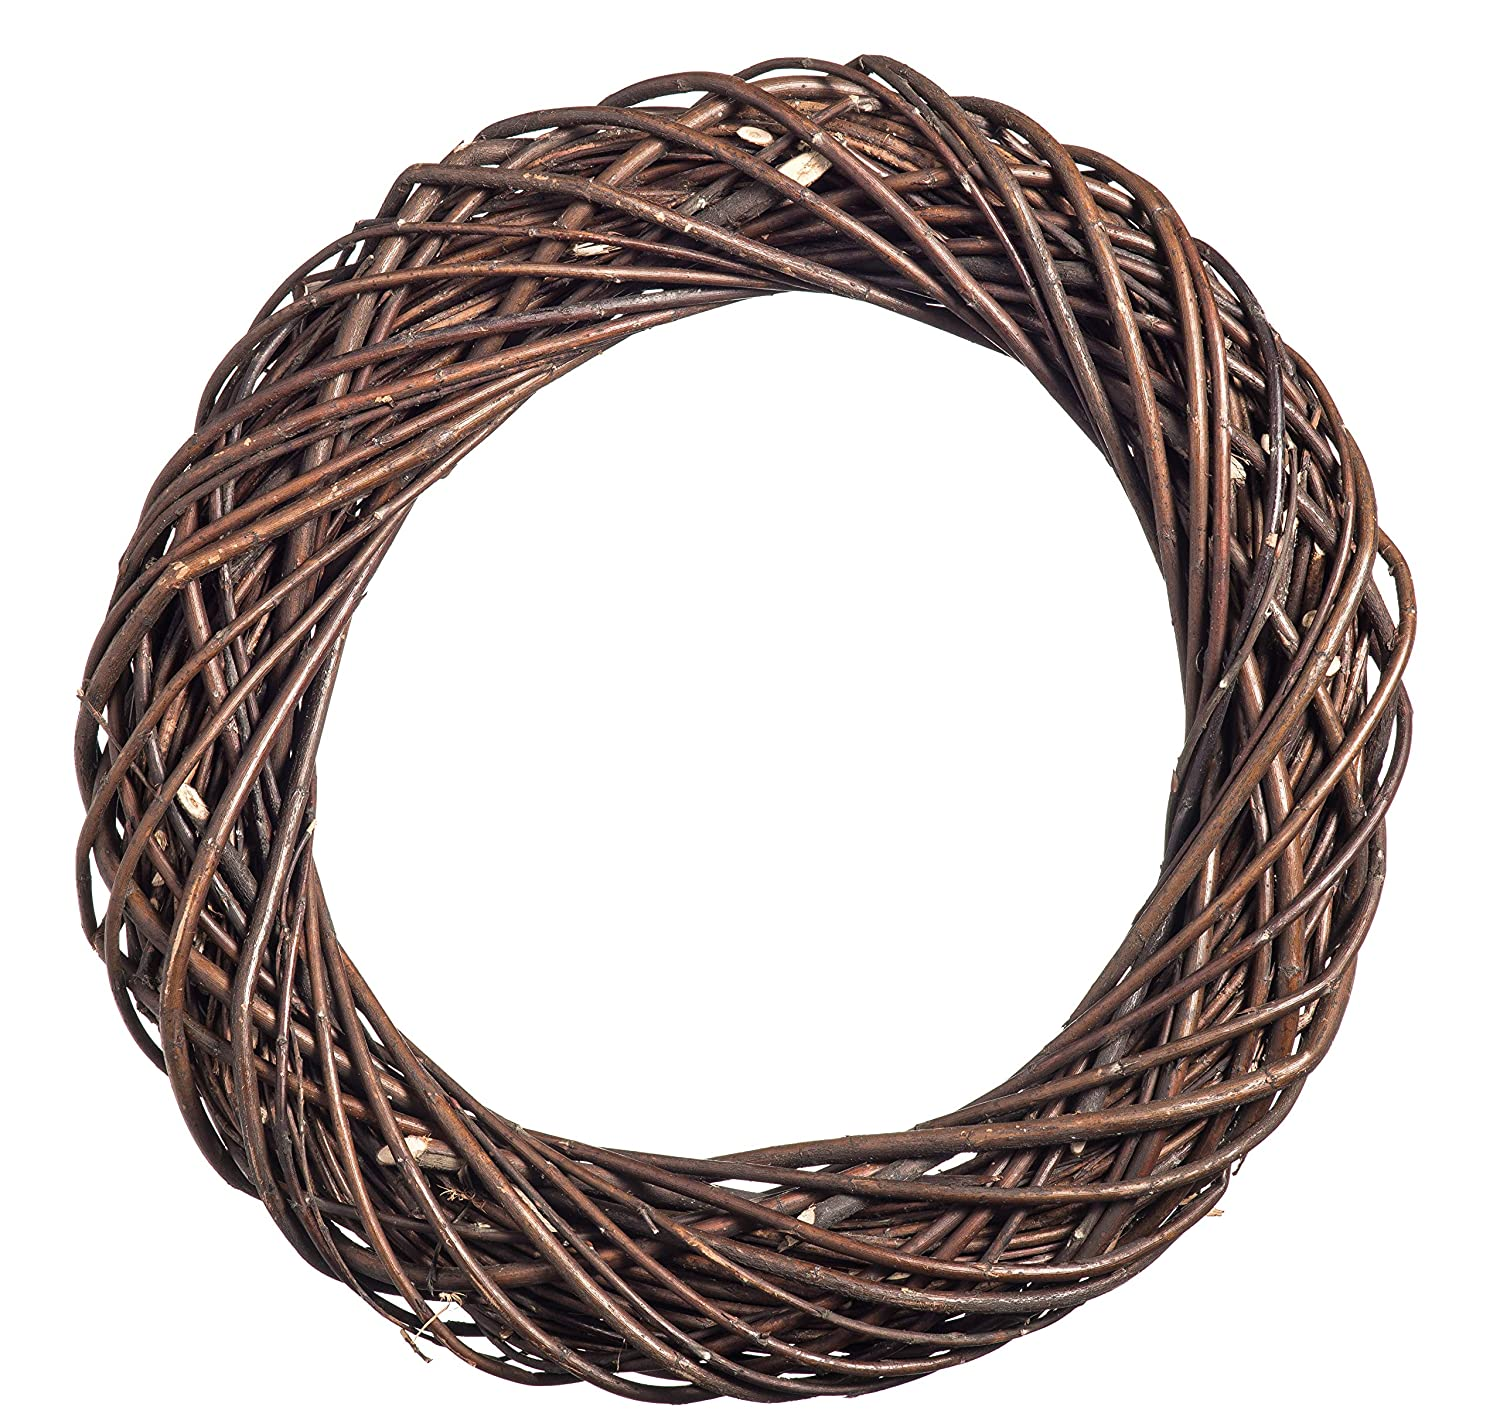 Prestige Wicker Dark natural Willow Chunky Wreath Large